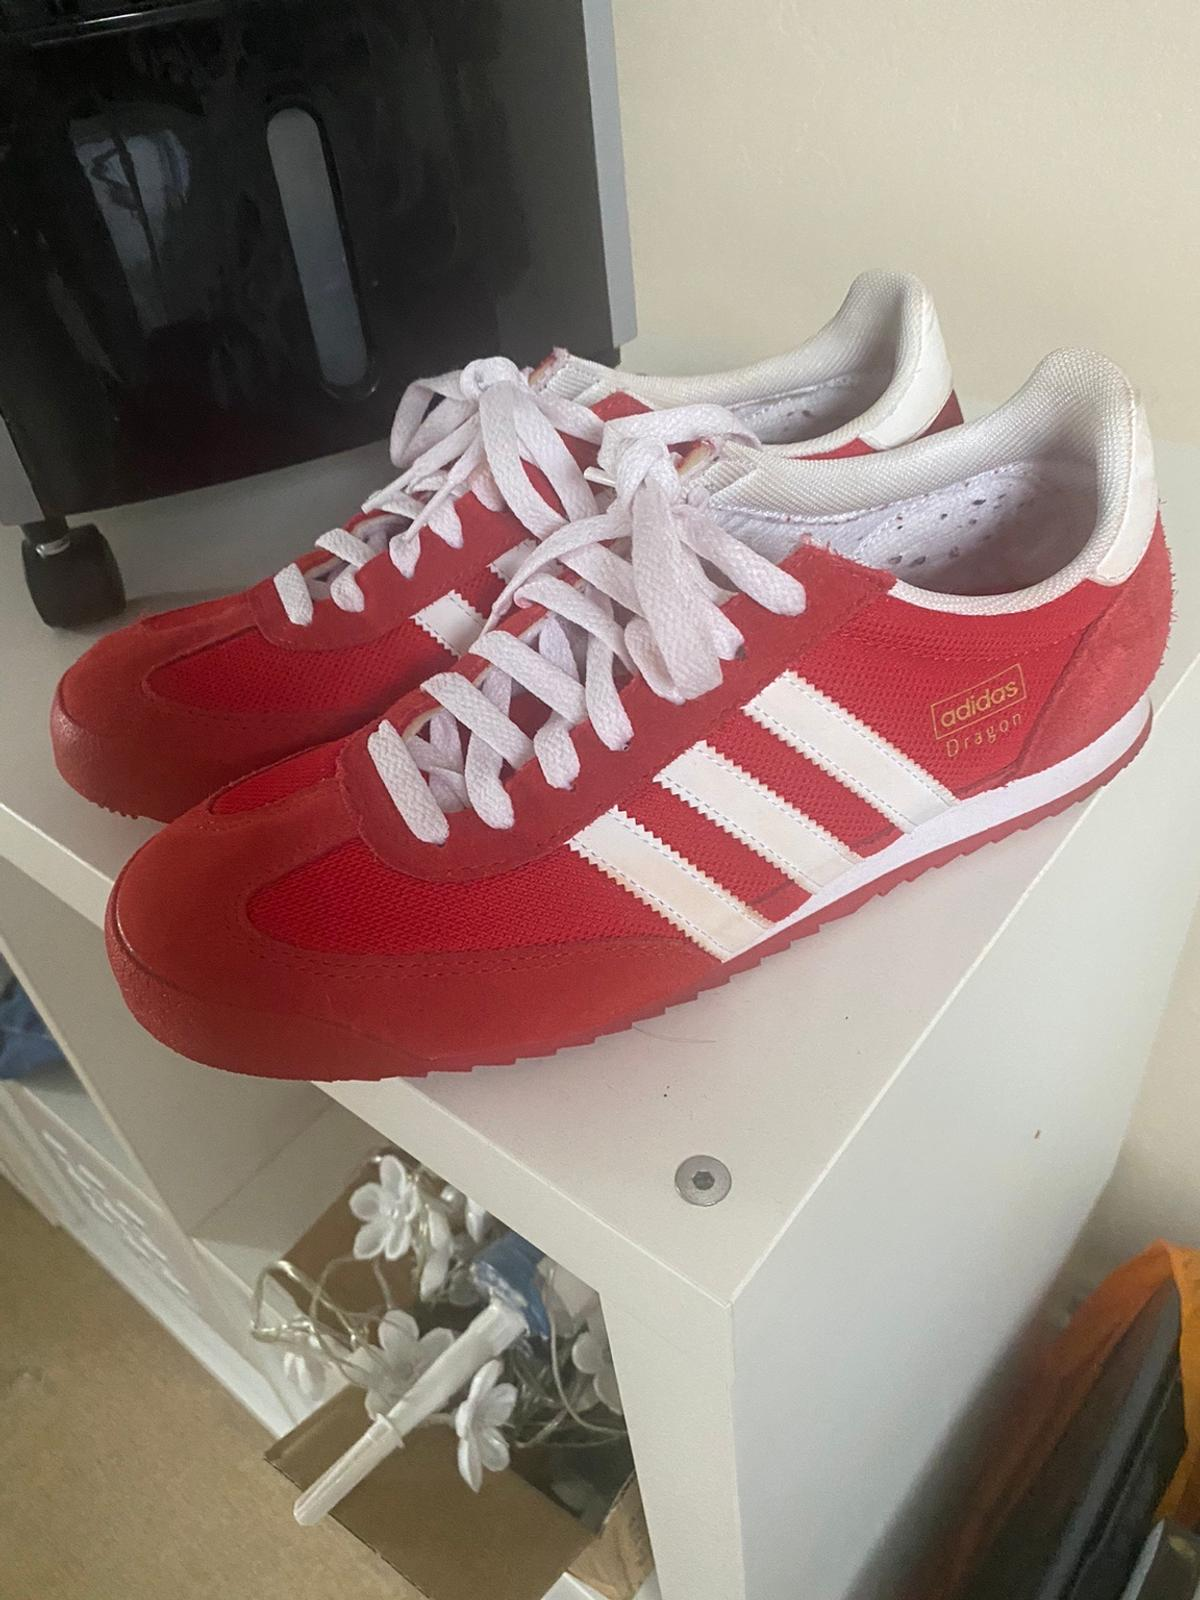 Aprovechar Manchuria Adviento  Adidas Dragon size 9 Red in DY10 Wyre Forest for £40.00 for sale | Shpock